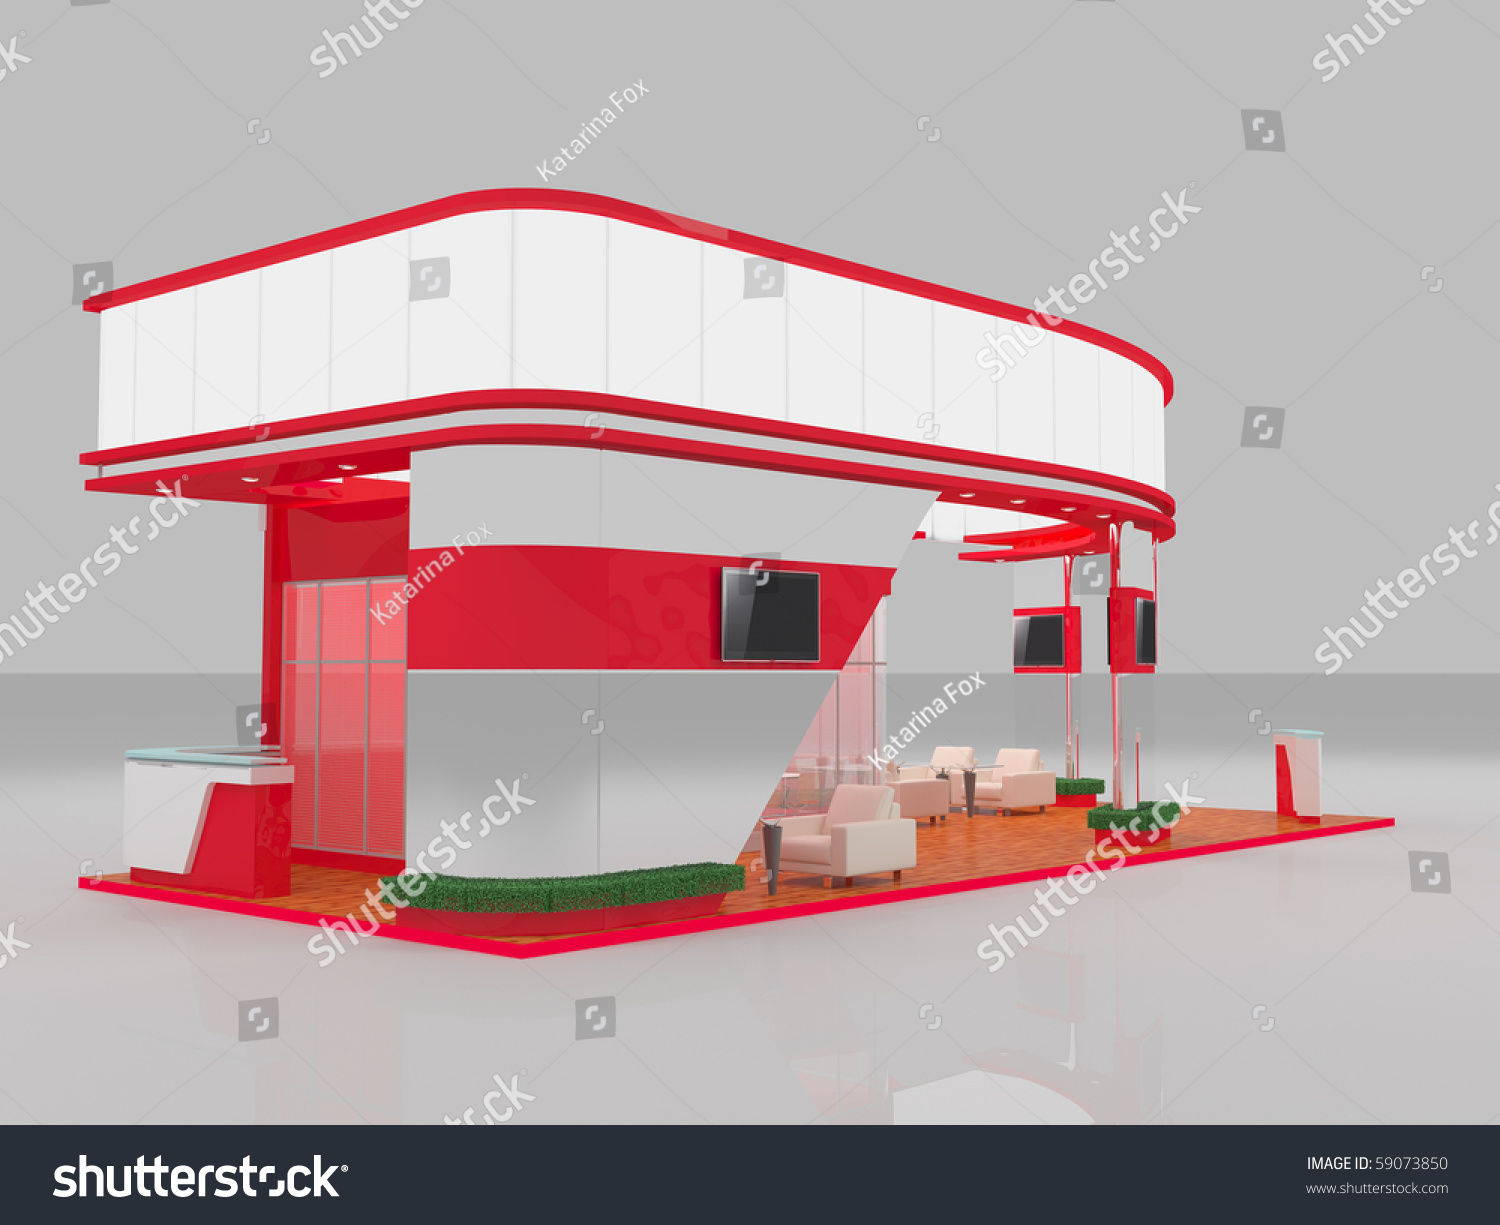 Modern Exhibition Stand Vector : D render of modern red exhibition stand stock photo